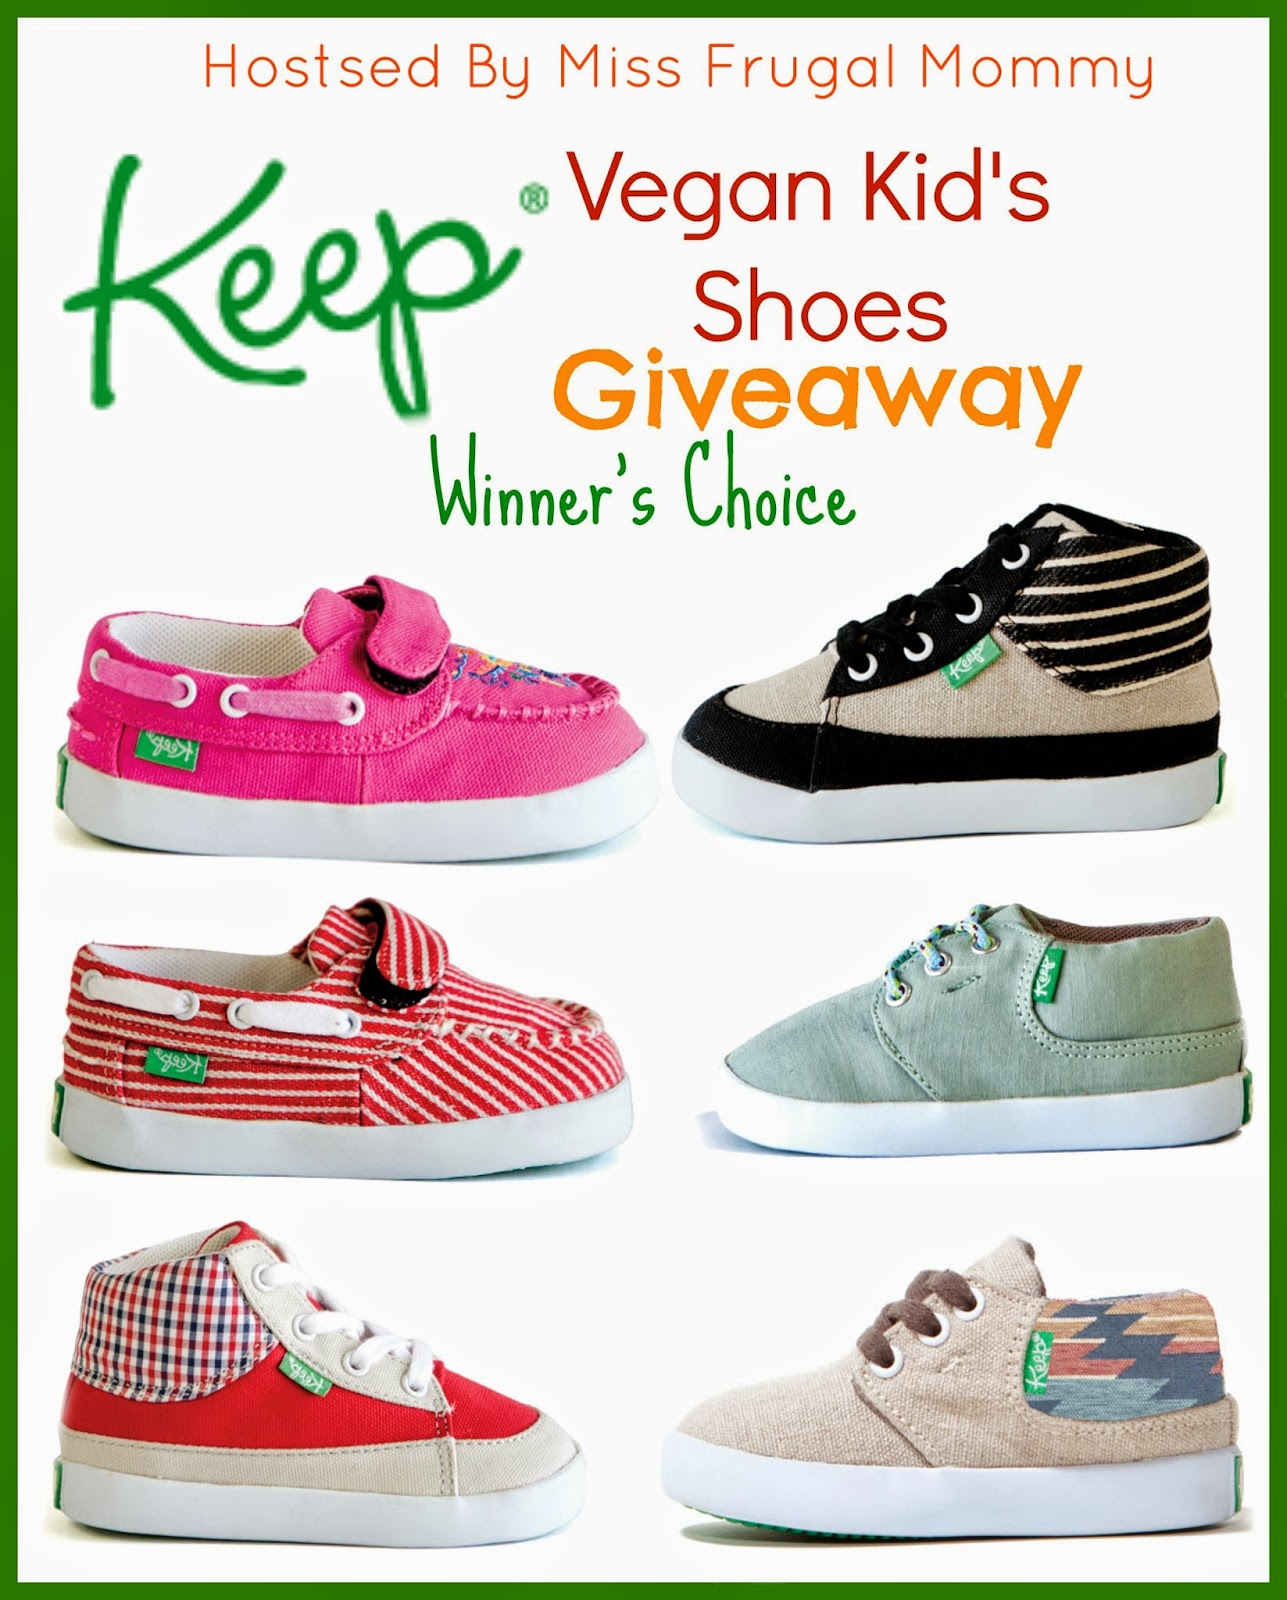 Keep Vegan Shoes Giveaway